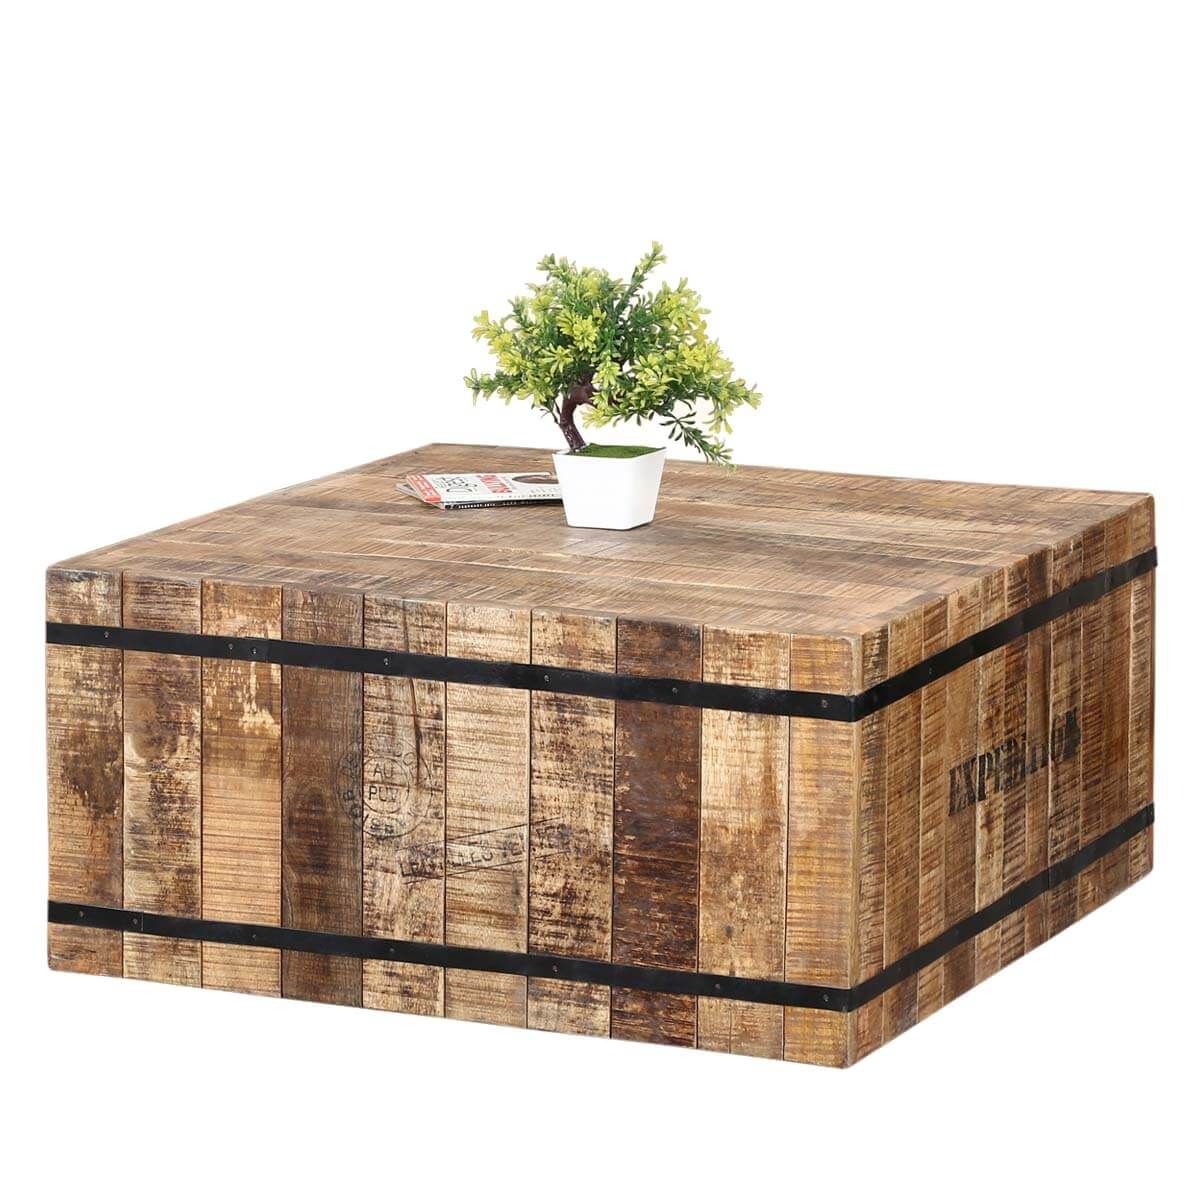 mango wood coffee table Expedition Rustic Mango Wood & Iron Square Box Style Coffee Table mango wood coffee table